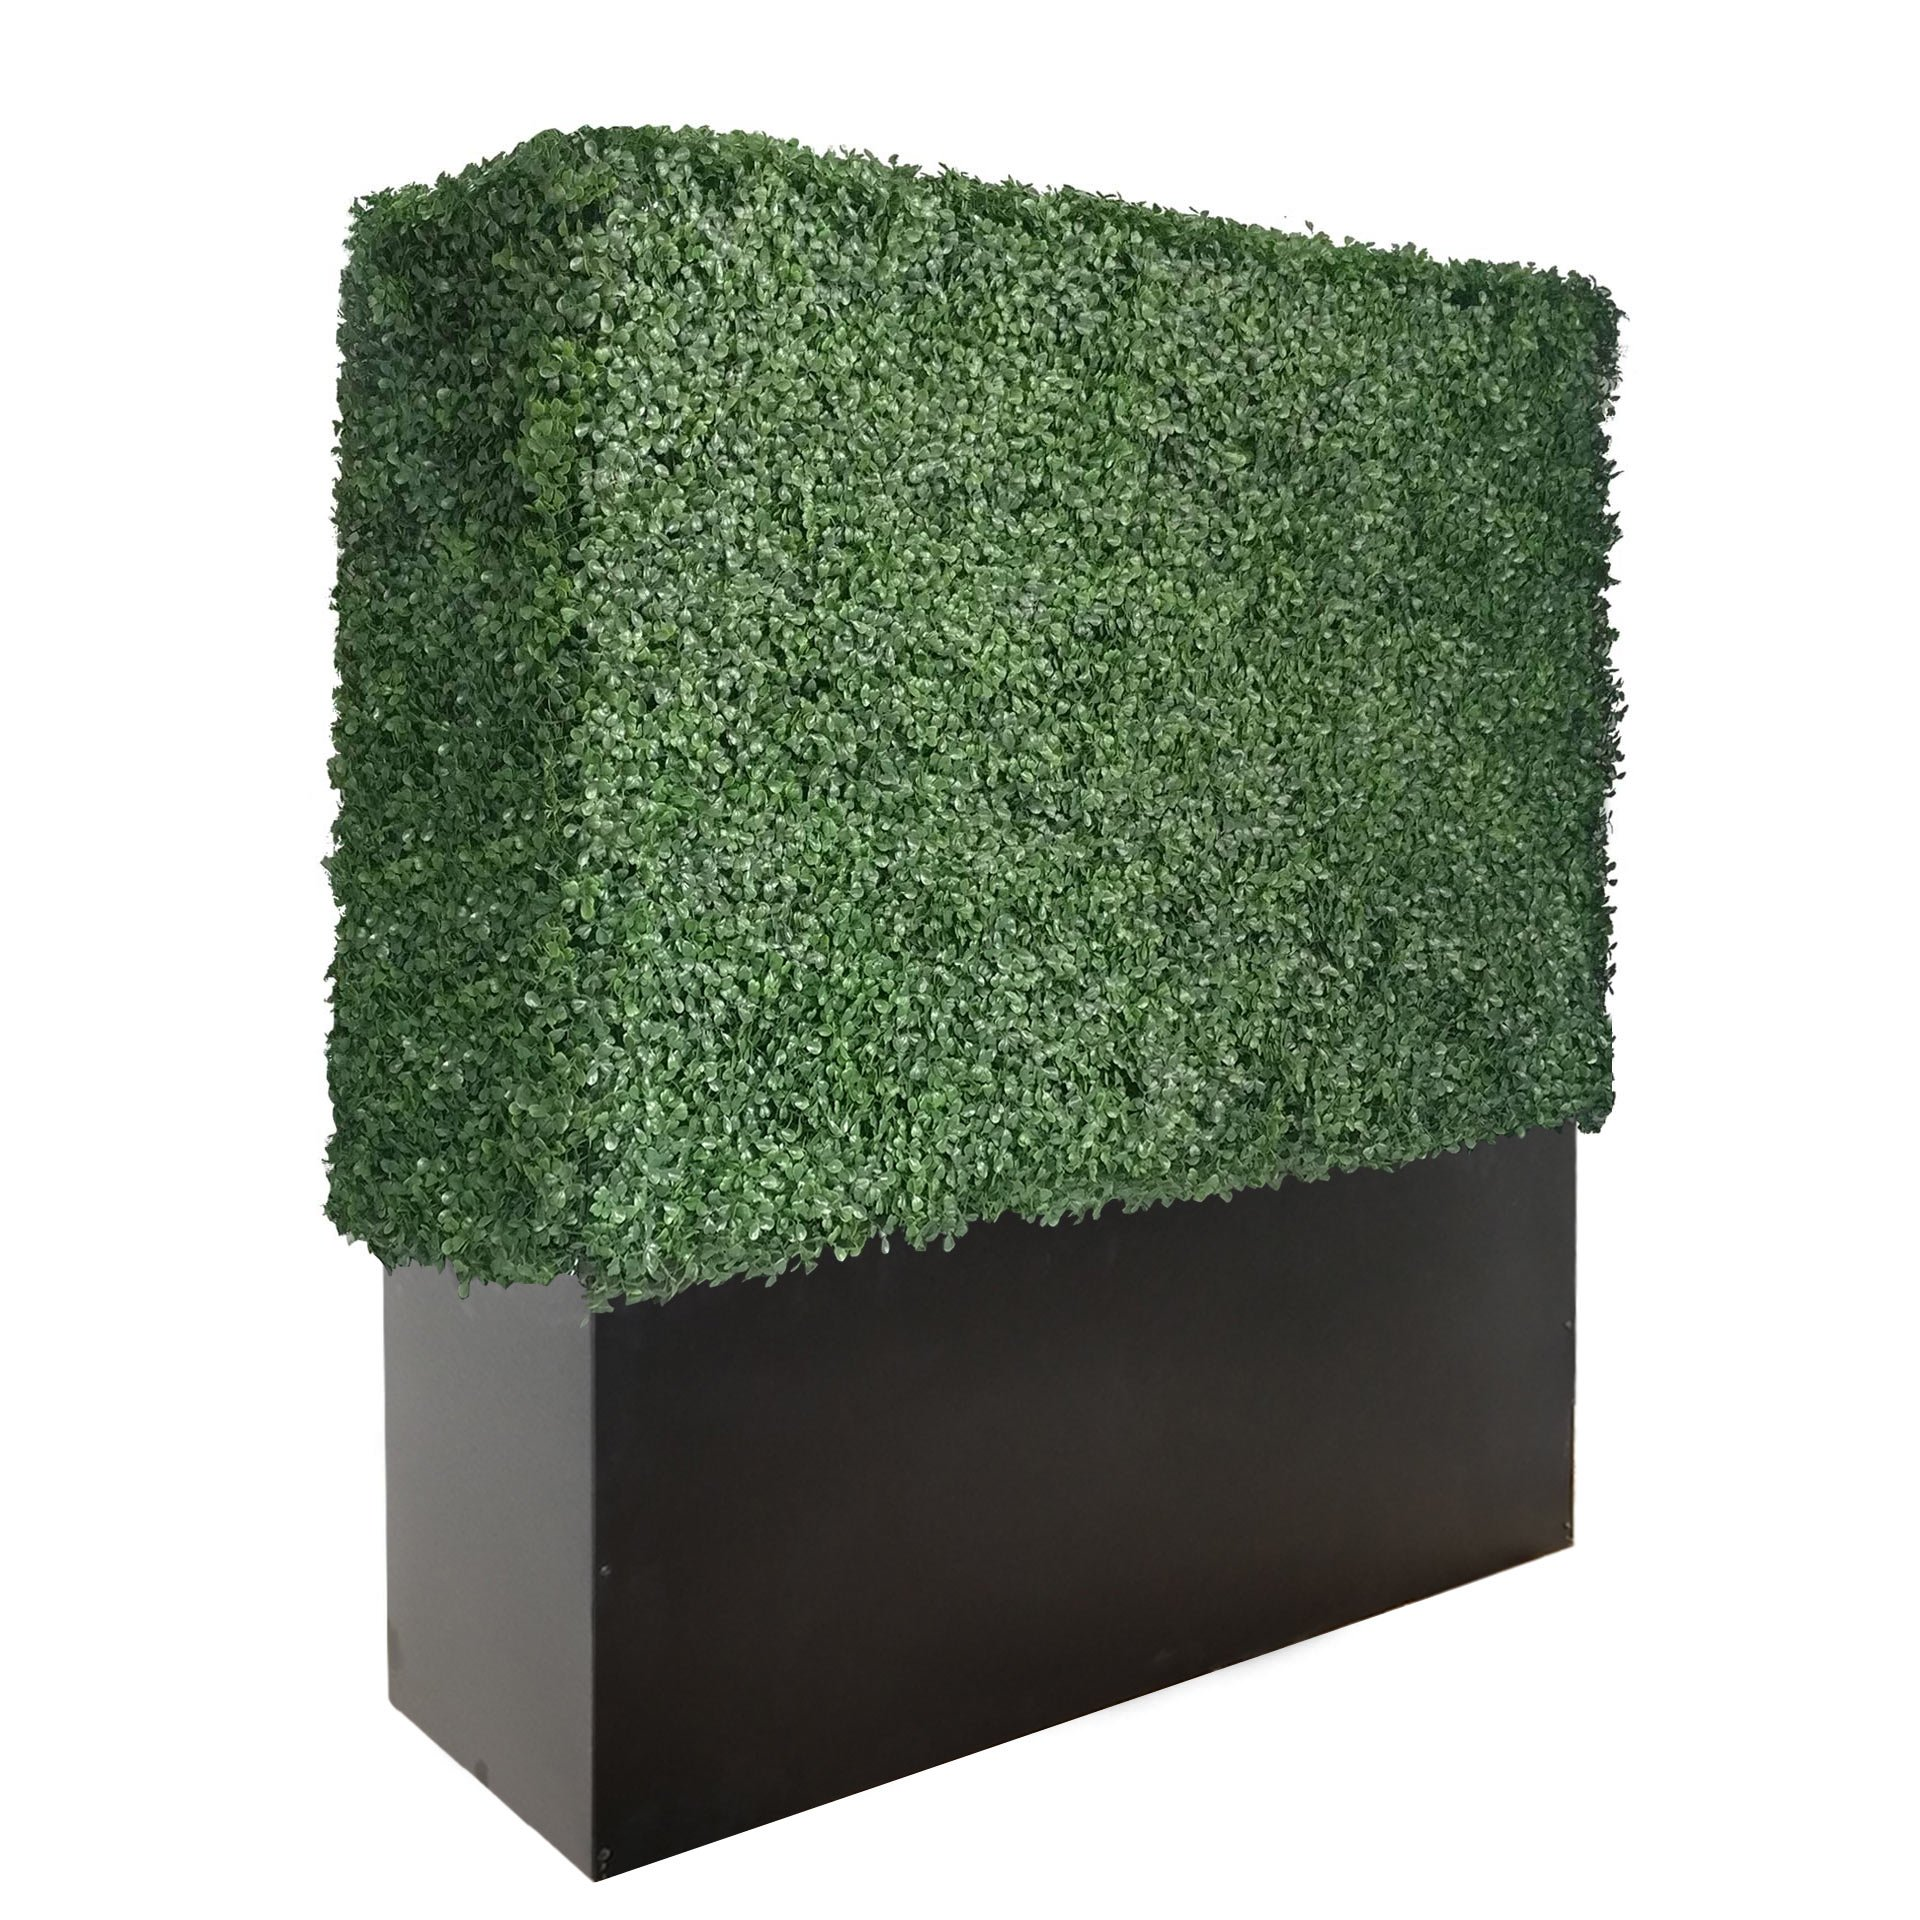 ARTIGWALL Artificial Boxwood Hedge Divider Wall With Black Stainless Steel Planter Box (48''H X 48''L X 12''D)